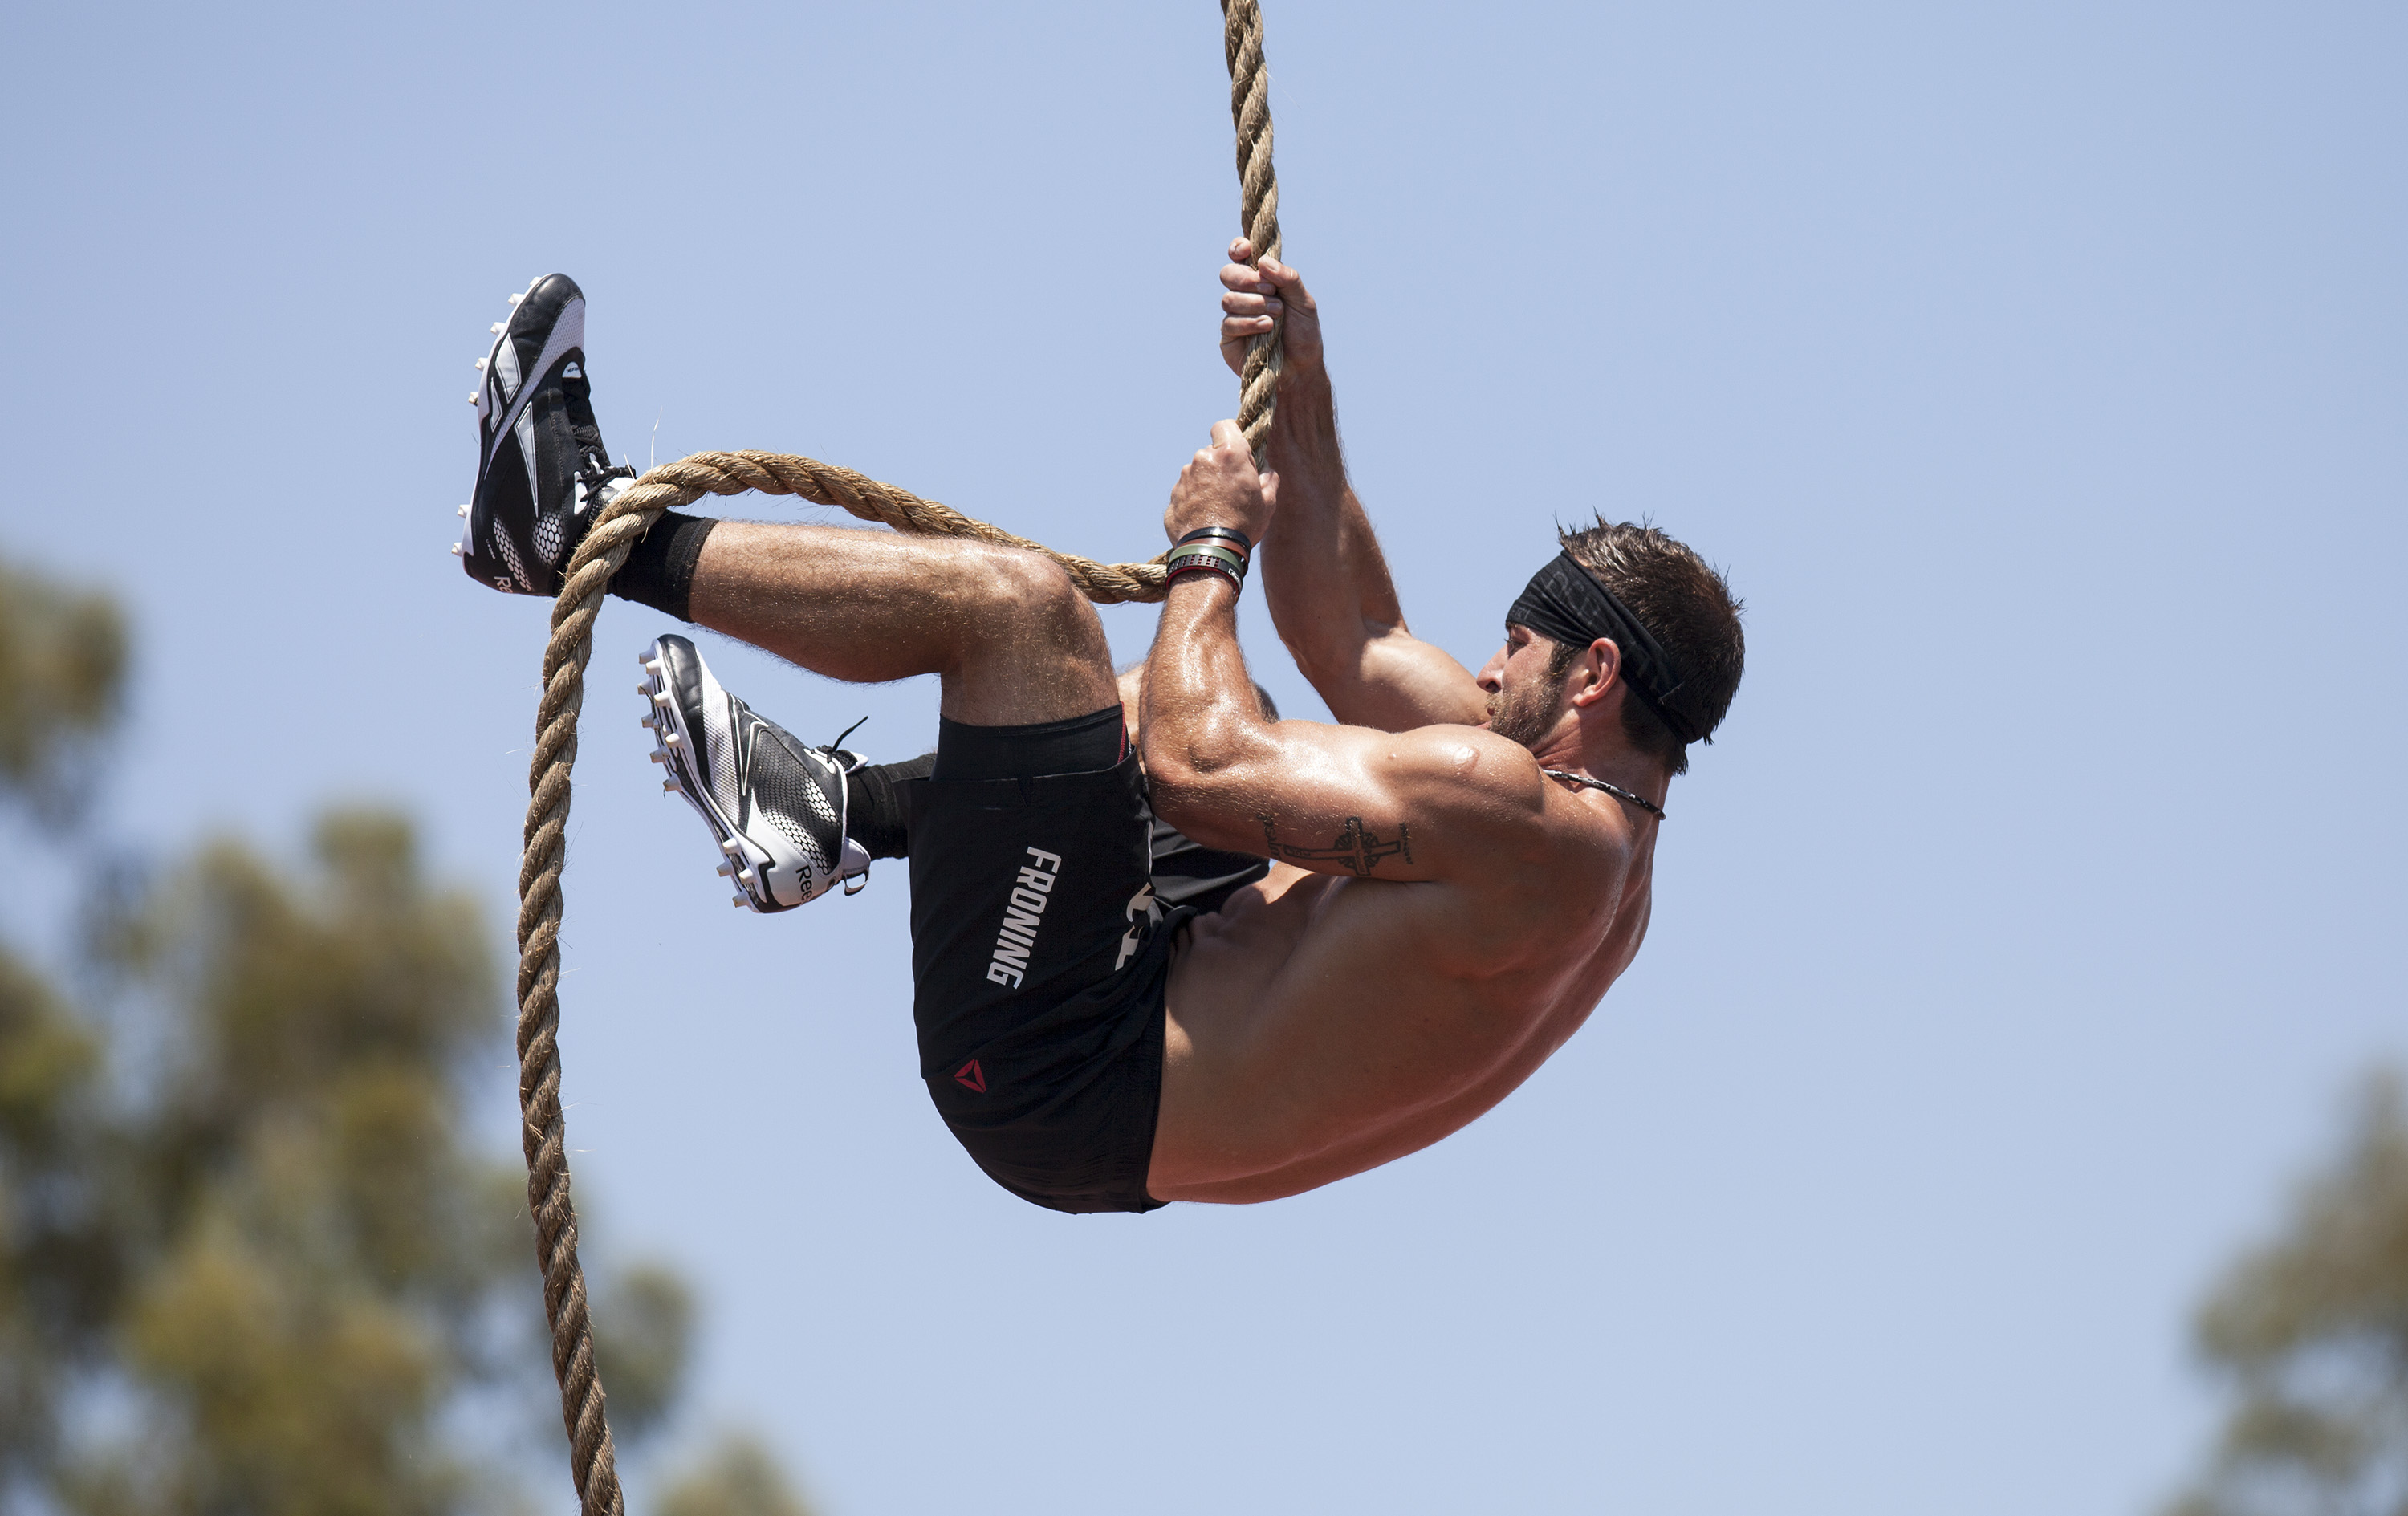 Plymouth CrossFit Rope Climb